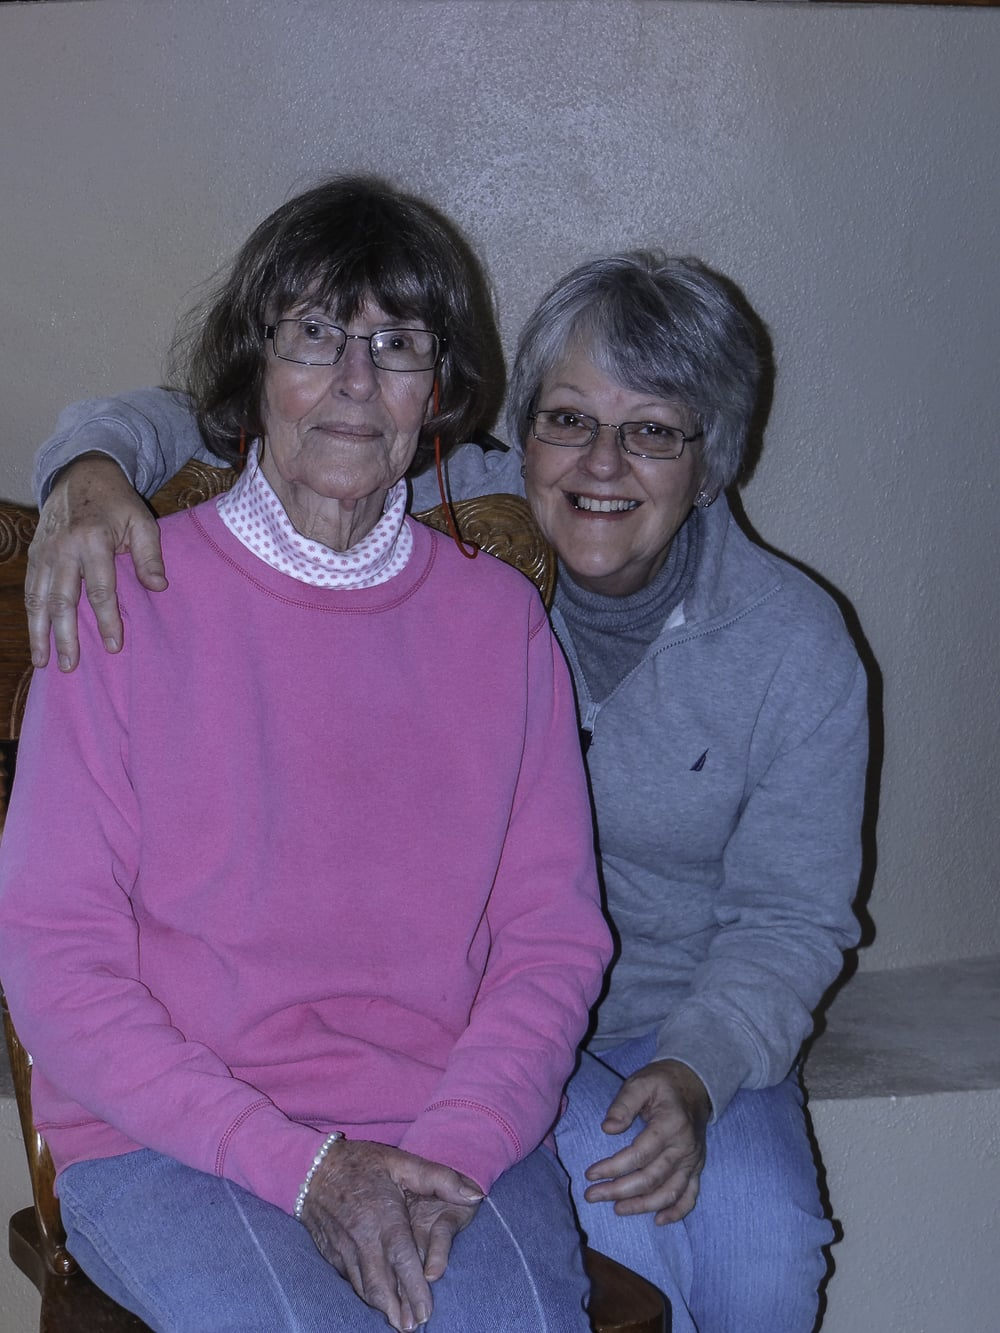 Me and mom.  Photo taken in December, 2011.  Her hair never did turn grey!!